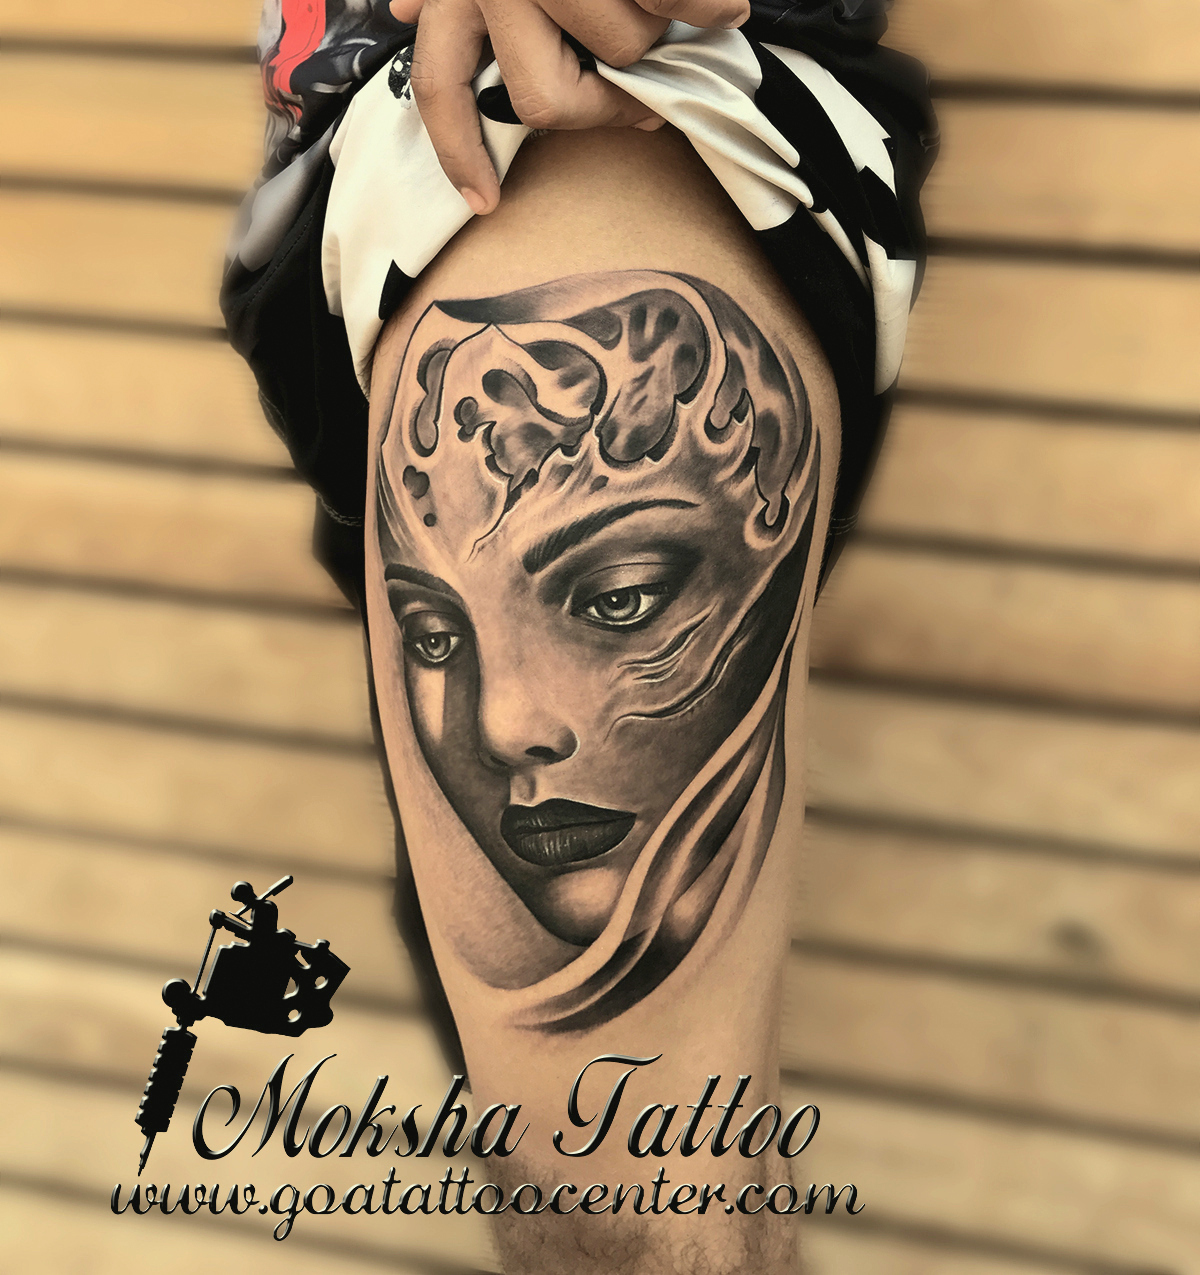 Best Tattoo Artists And Studio Of India With Safe Tattoo: Girl Face Tattoo Done By Mukesh Waghela At Moksha Tattoo